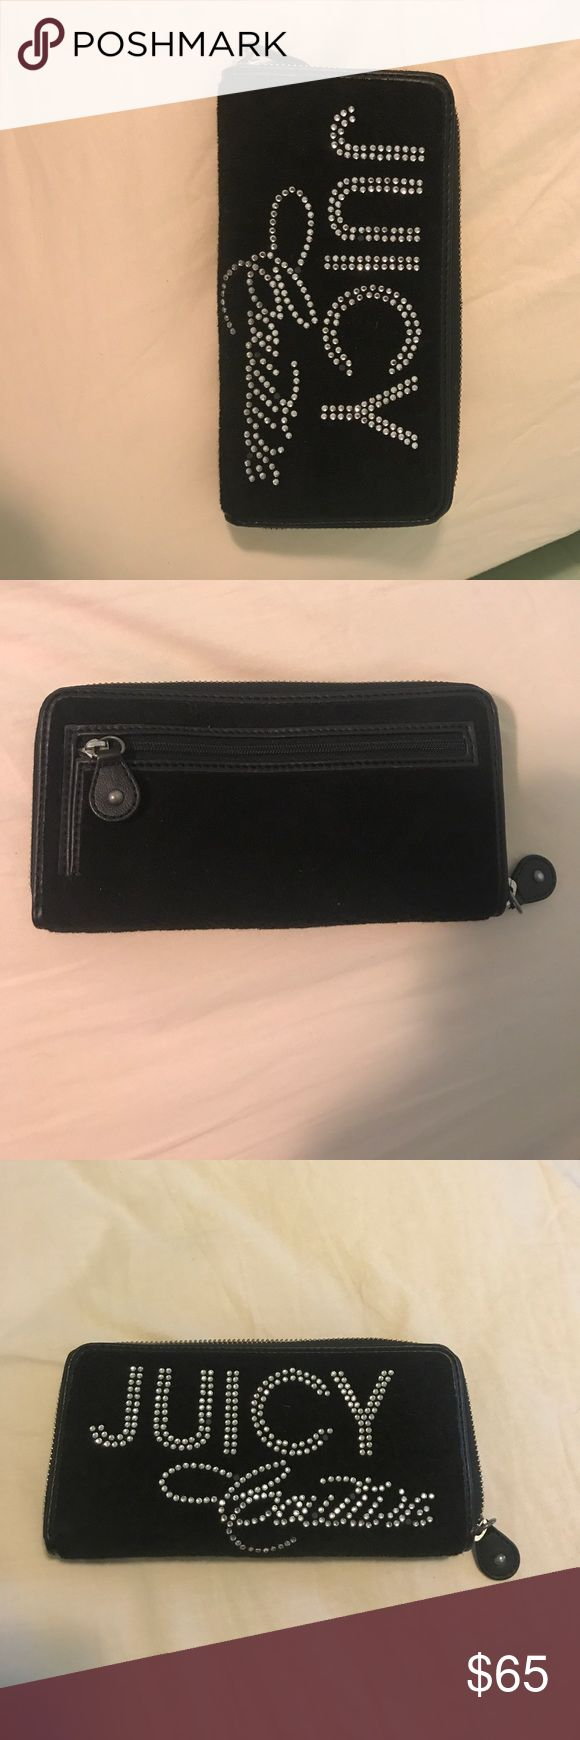 Juicy Couture Wallet Black Juicy Couture wallet. Almost new condition. Zipper closure that goes around entire wallet. Opens up with many sections inside. Two places to store credit cards, zipper enclosure for loose change, two spots to keep cash.. Juicy Couture Bags Wallets